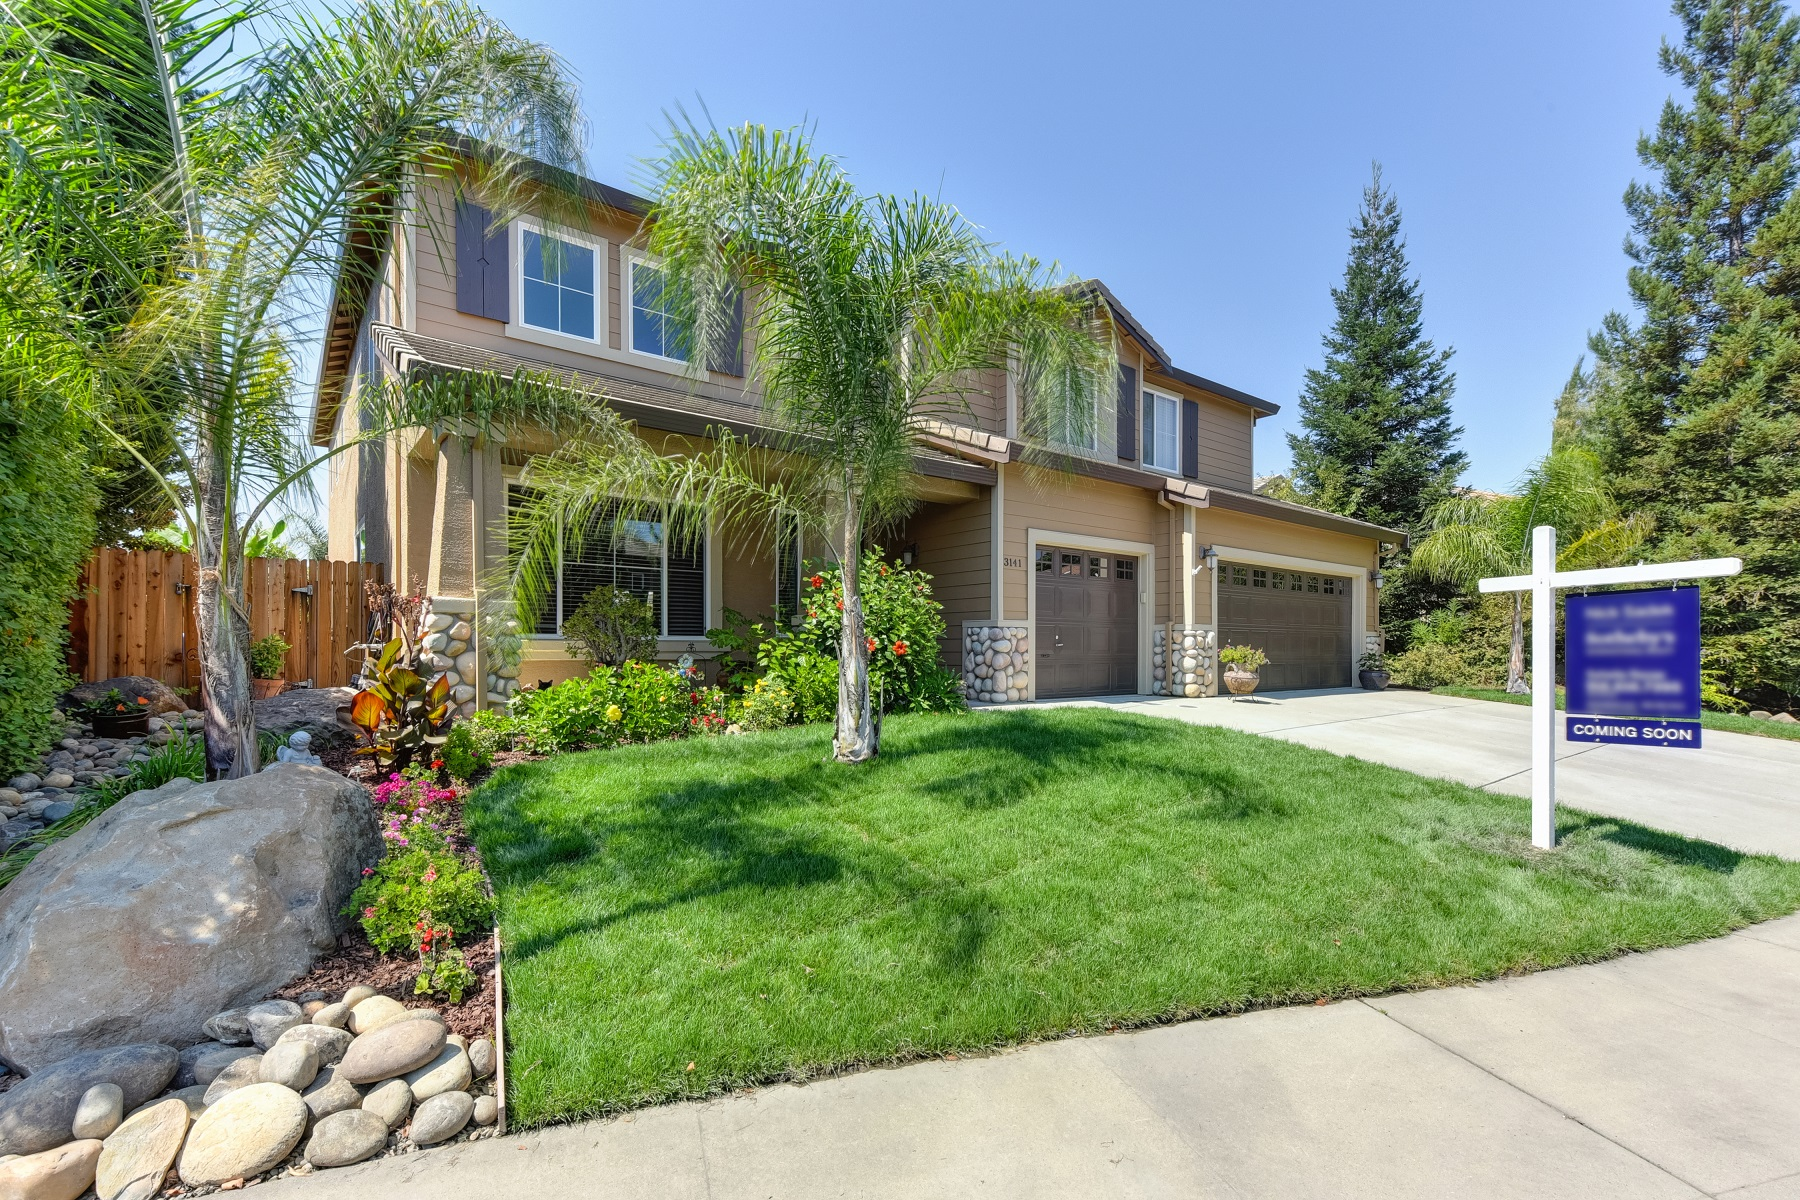 Single Family Home for Active at 3141 Mount Tamalpais Drive, Roseville CA 95747 3141 Mount Tamalpais Drive Roseville, California 95747 United States